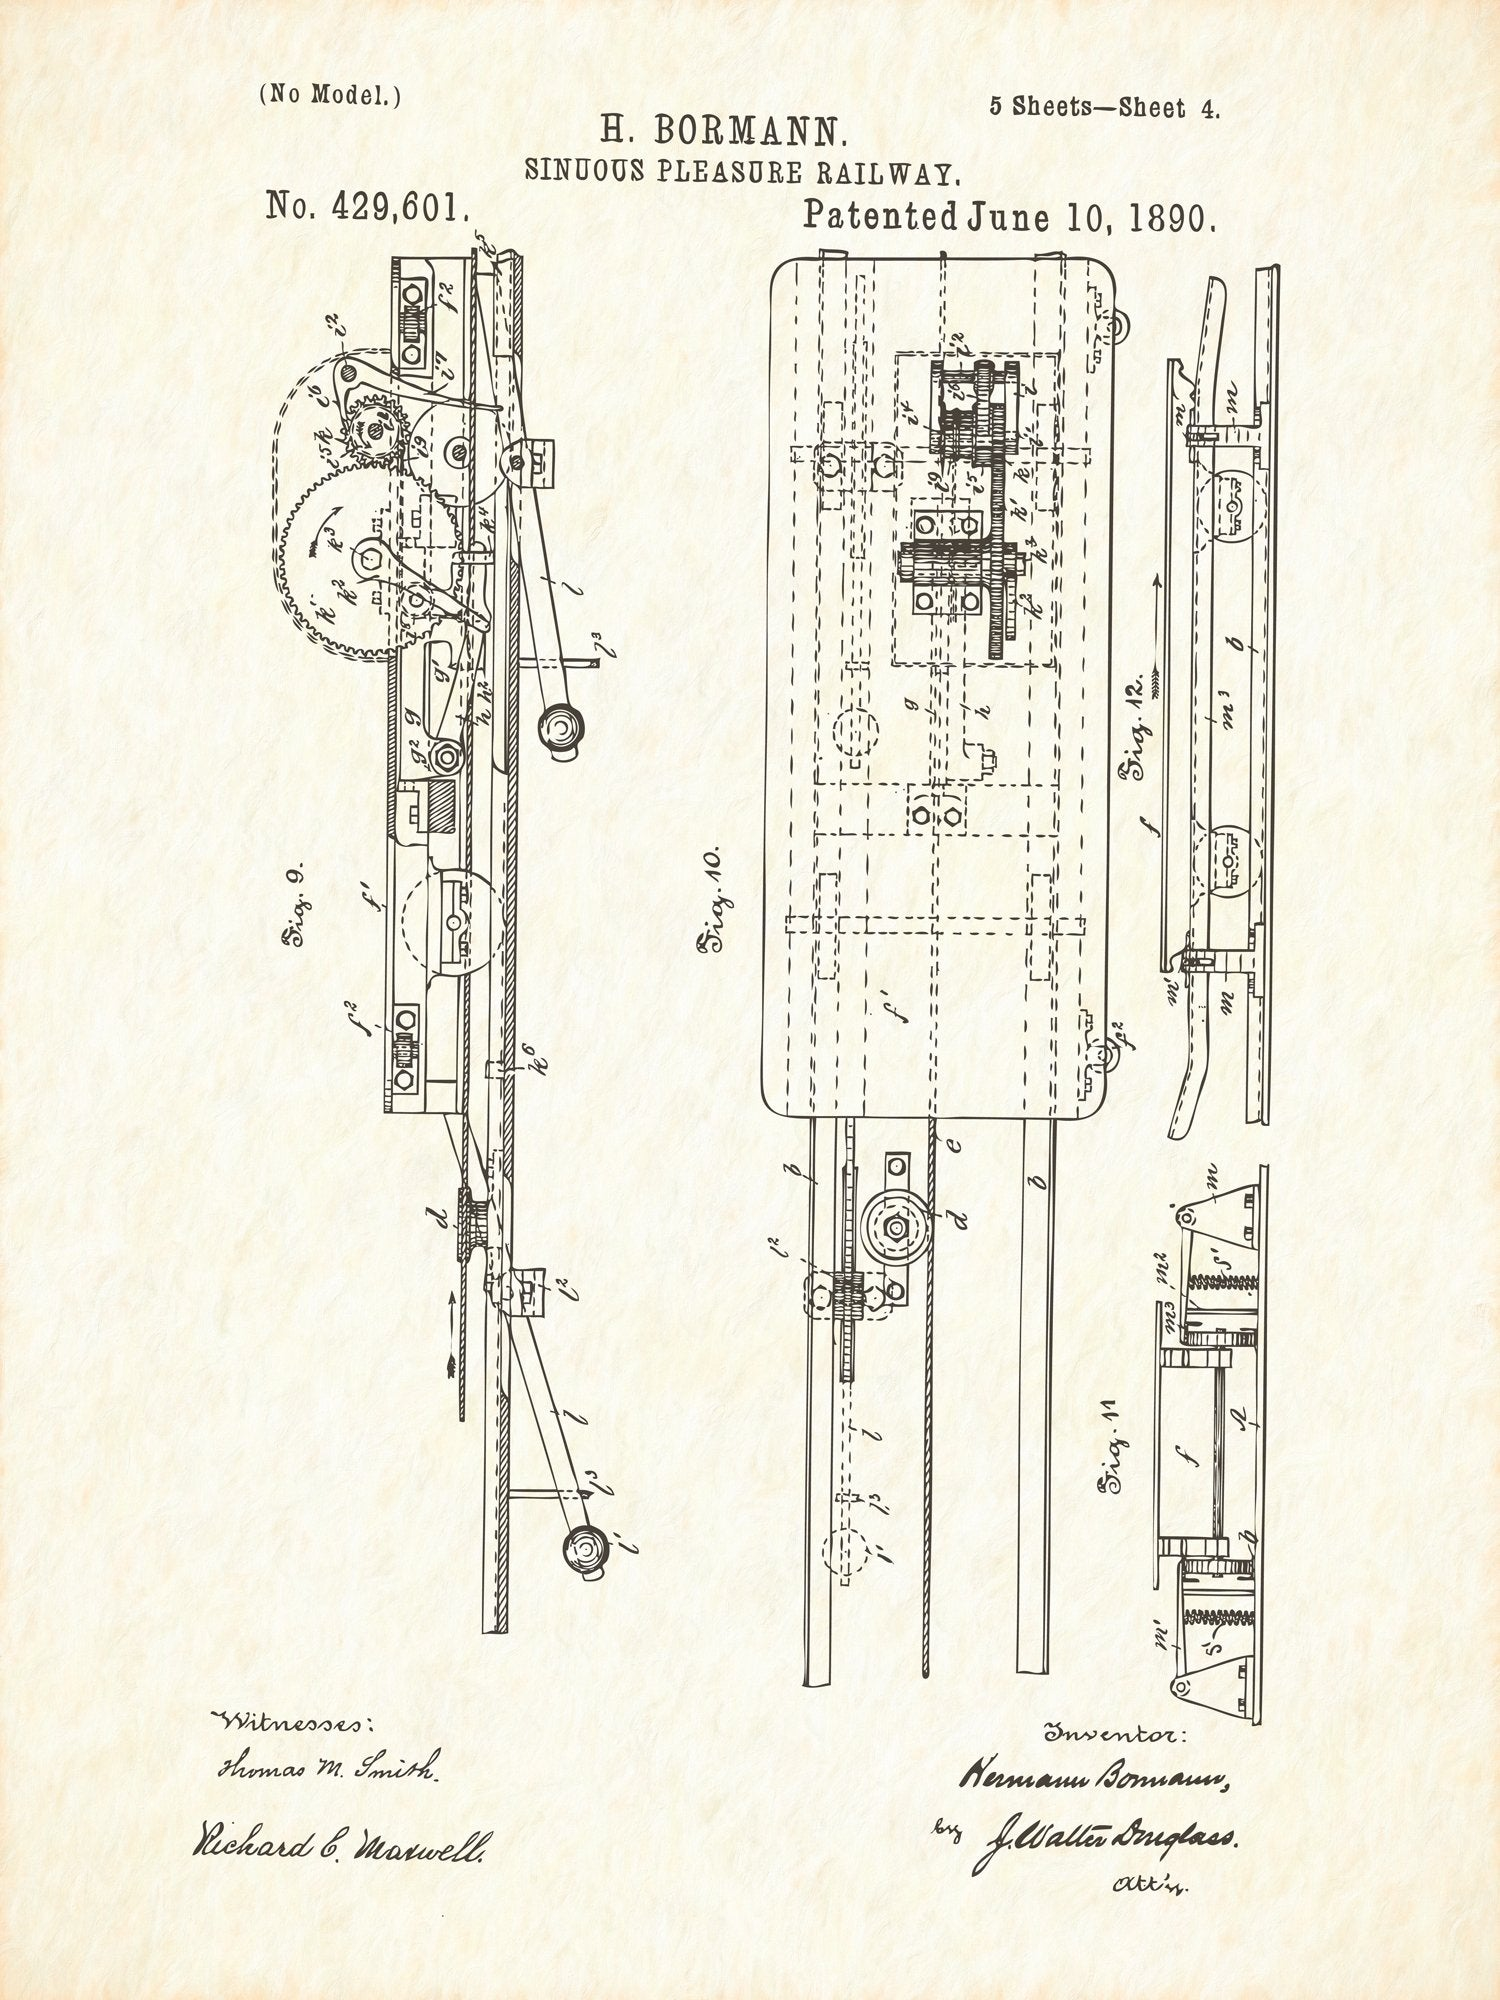 U.S. Patent No. 429601-4 Sinuous Pleasure Railway Reworked, Series 1